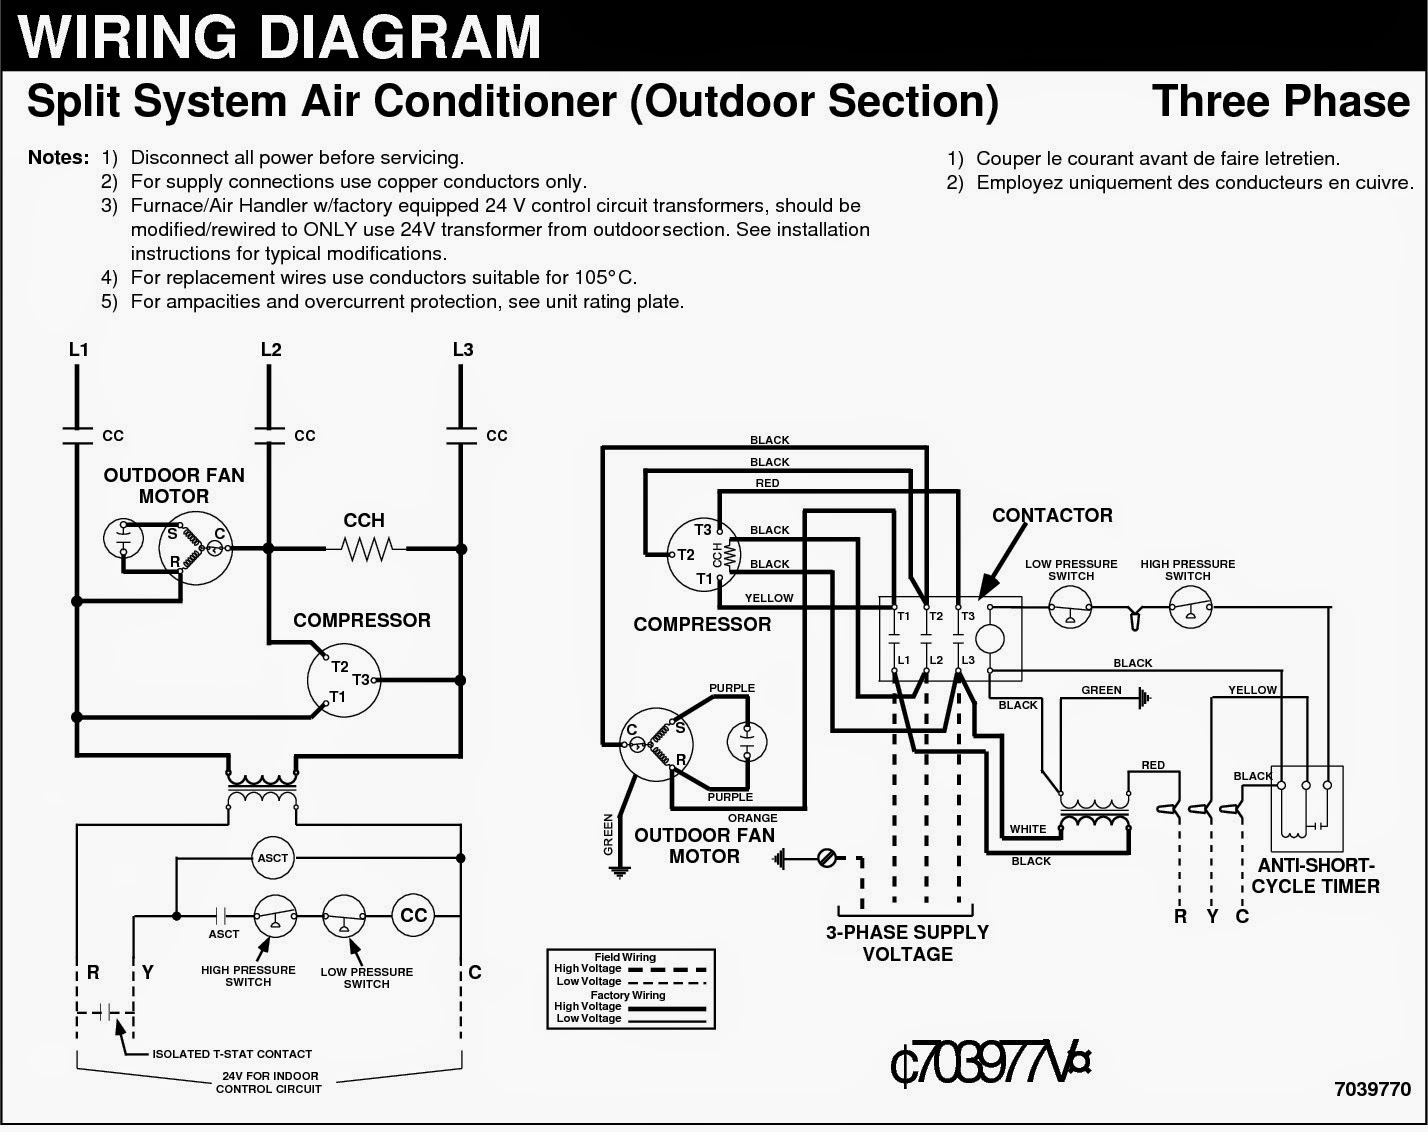 3+phase electrical wiring diagrams for air conditioning systems part two home ac wiring diagram at n-0.co